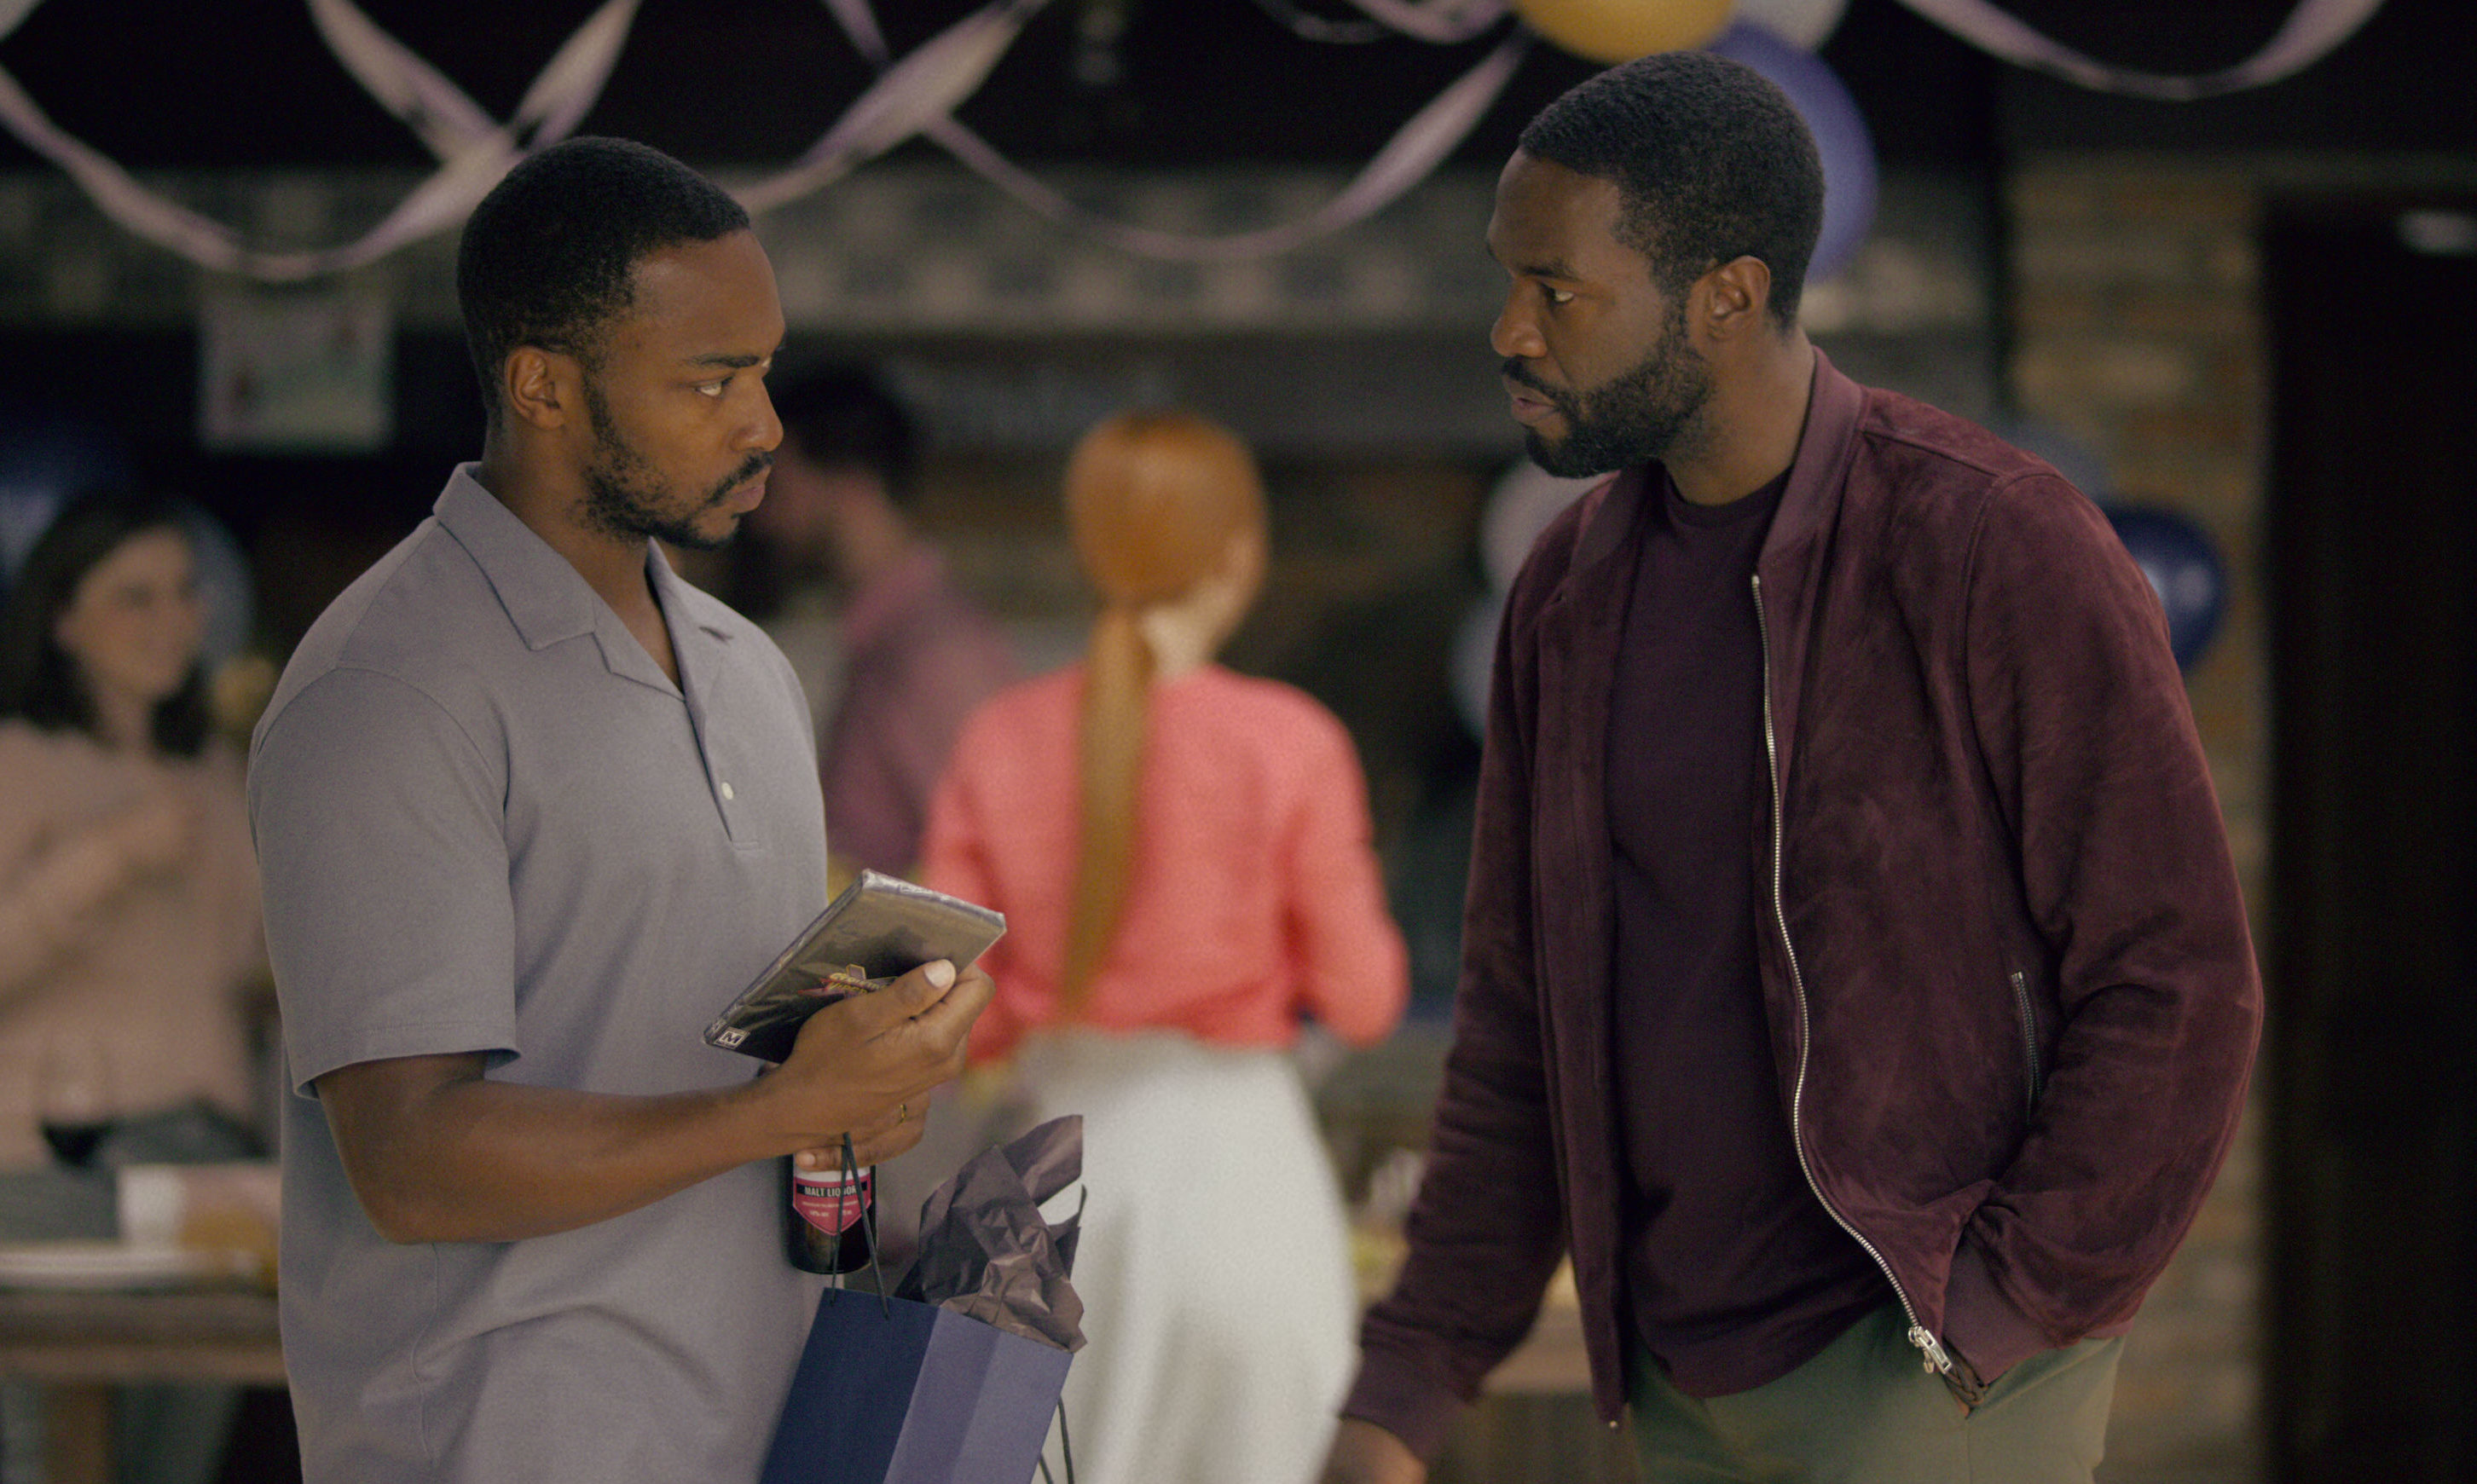 Anthony Mackie and Yahya Abdul-Mateen II in Black Mirror.